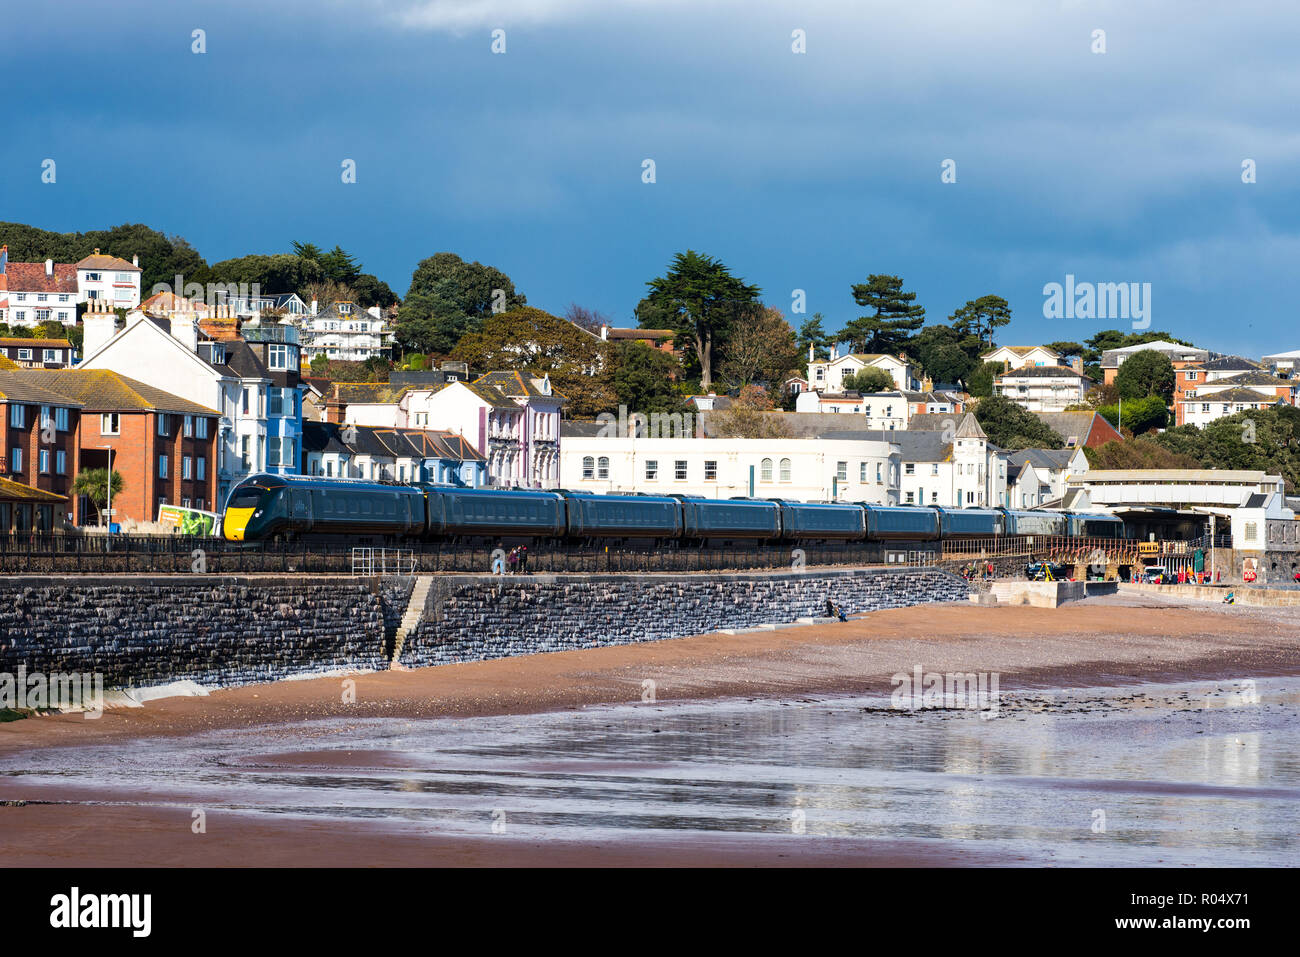 DAWLISH, DEVON, UK - 26OCT2018: GWR Class 802 High Speed Train  802009 approaching Dawlish Station from the South. - Stock Image